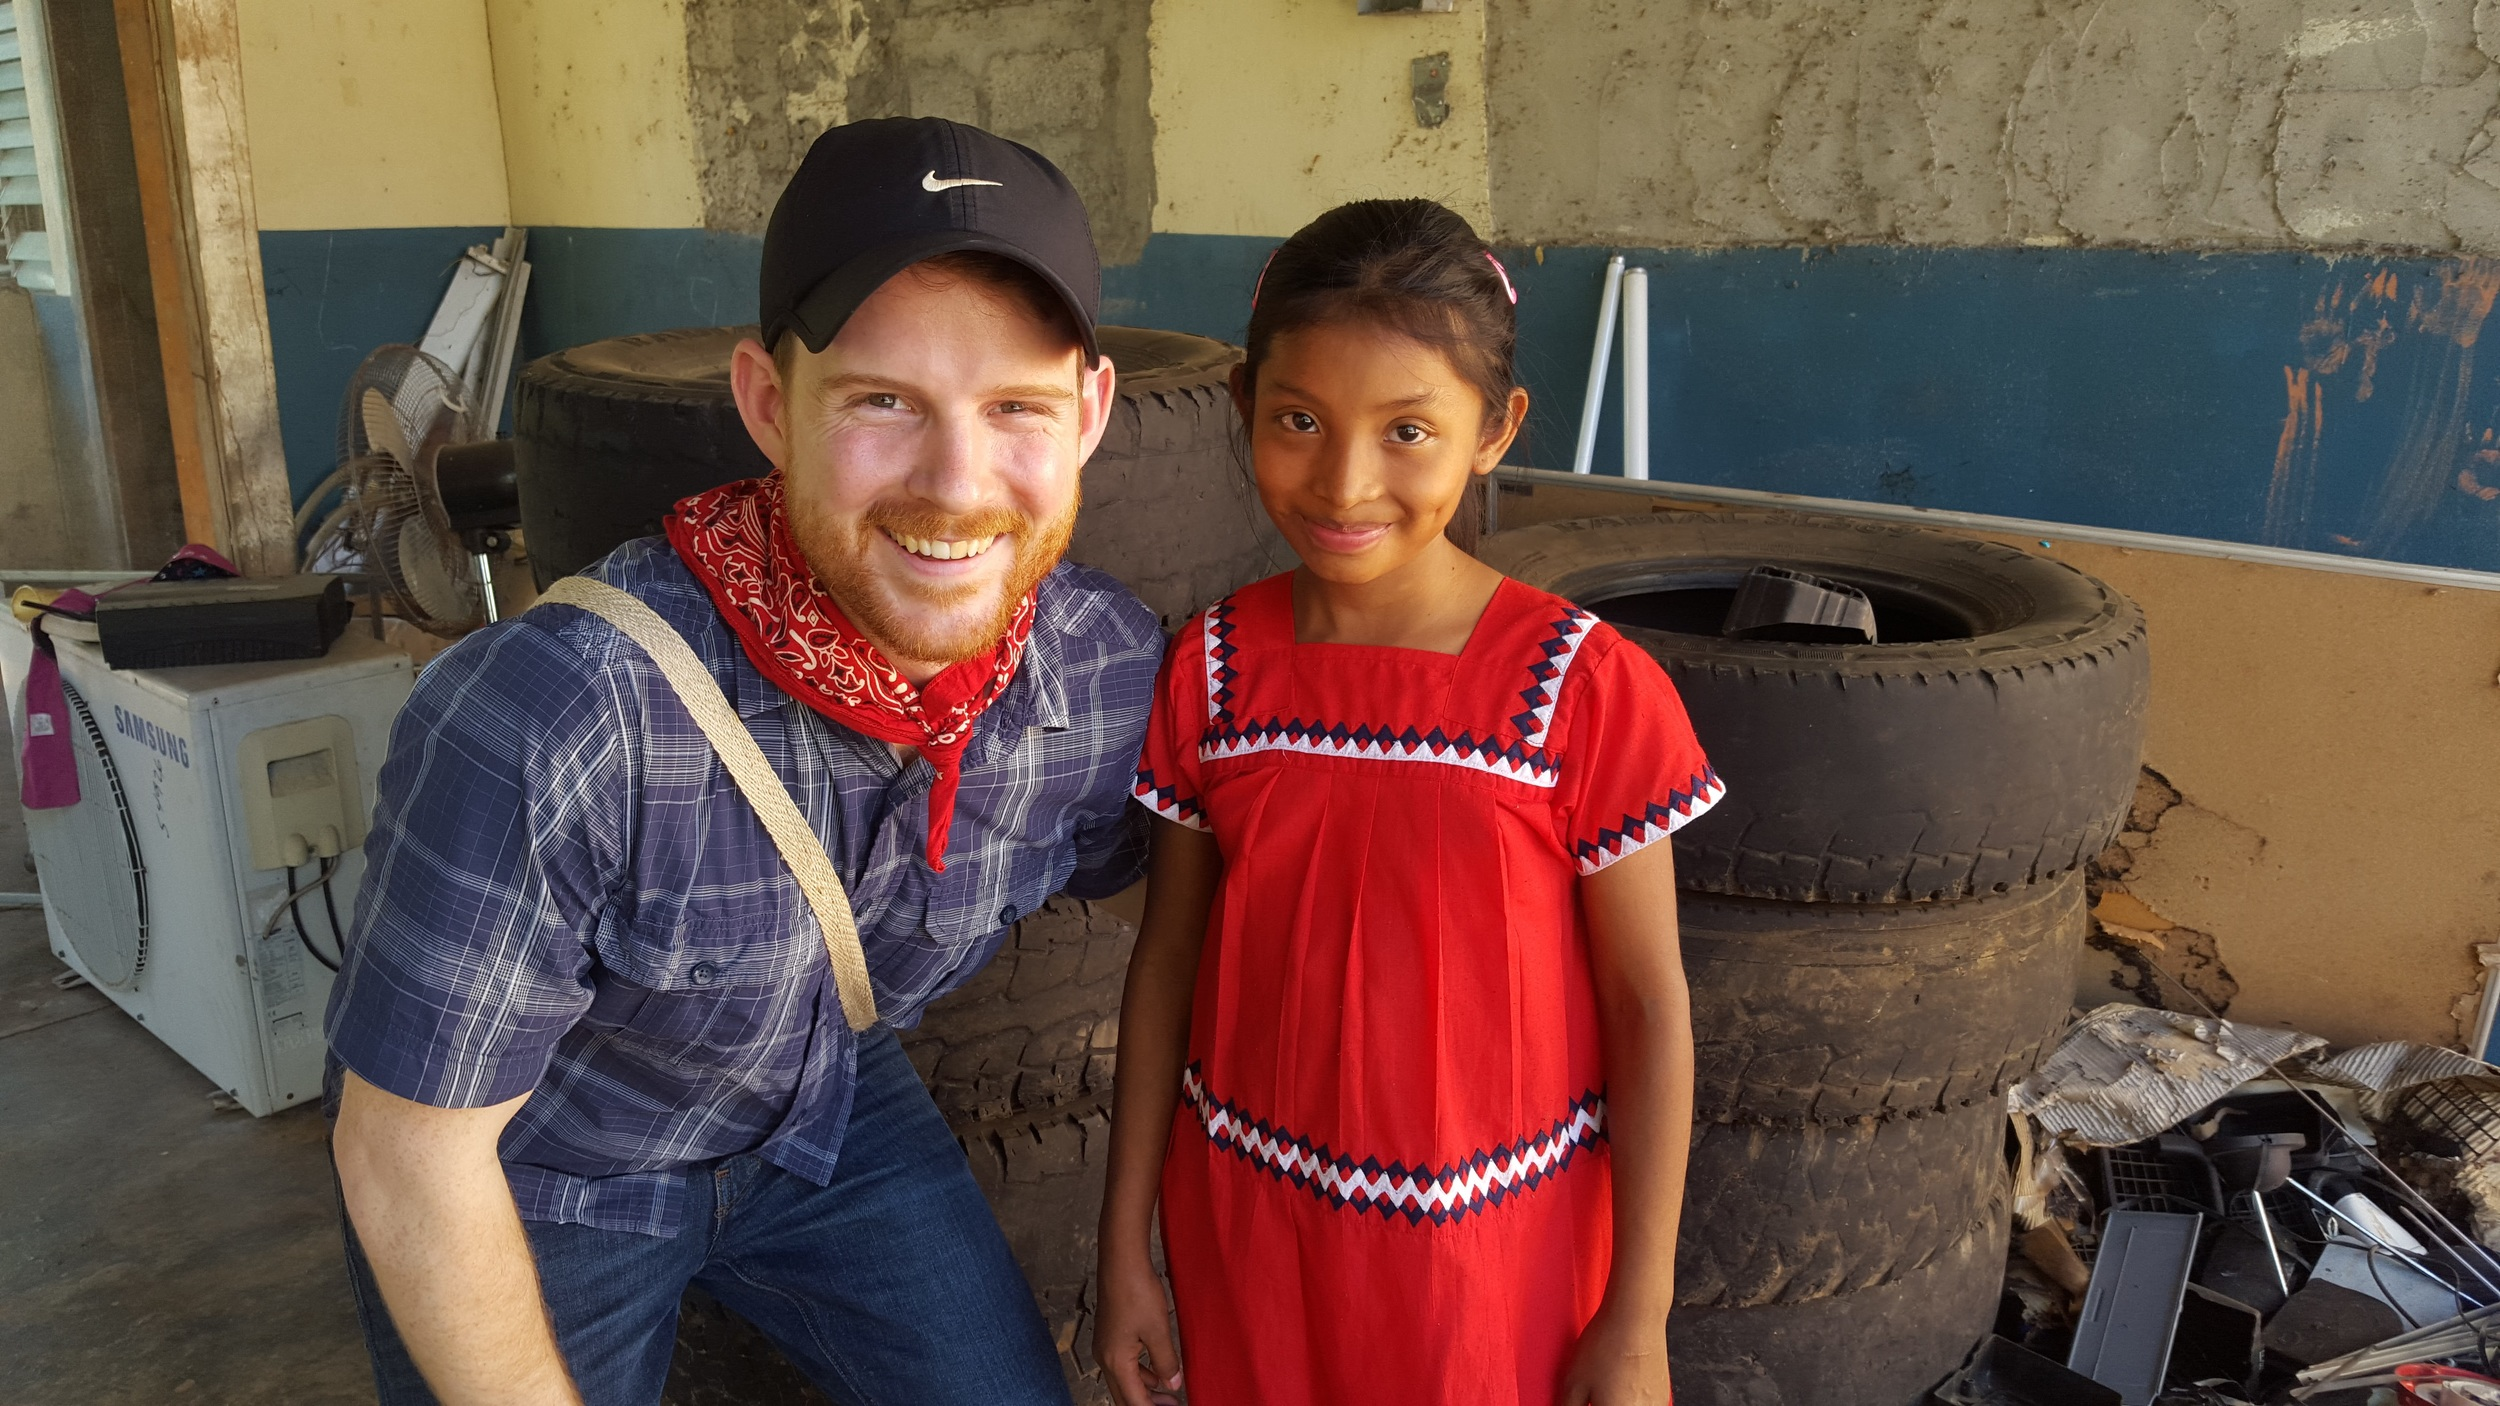 6. FFC Secretary Brooks Winner reconnected with his host sister Yasmin who he stayed with in 2008 during his study abroad trip to Quebrada Guabo. Brooks' connection with Yasmin and her family during his study abroad inspired him to co-found Few for Change with his classmates.